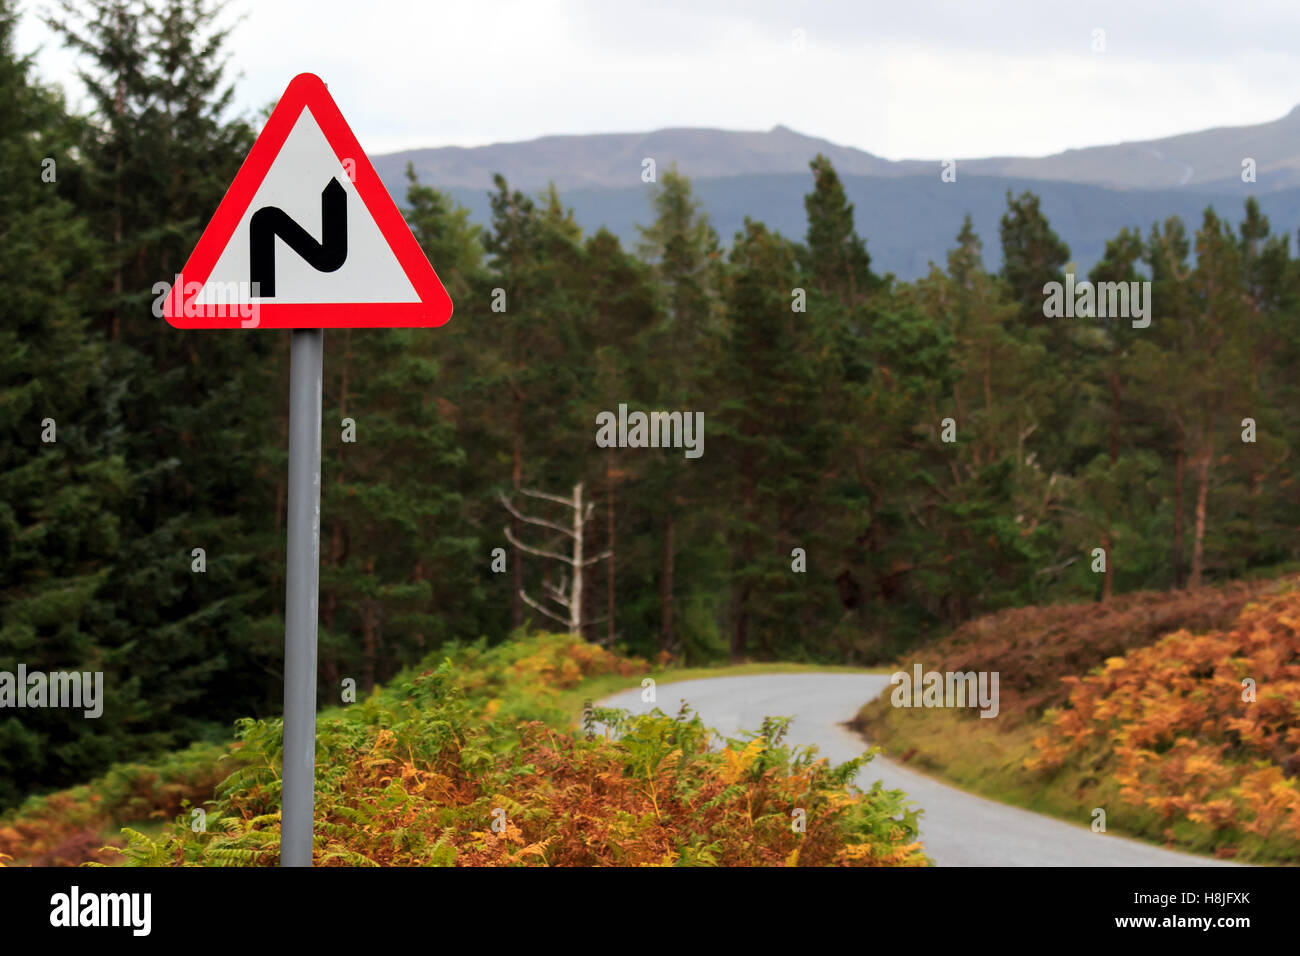 Triangular road sign warning of bends in the road - Stock Image